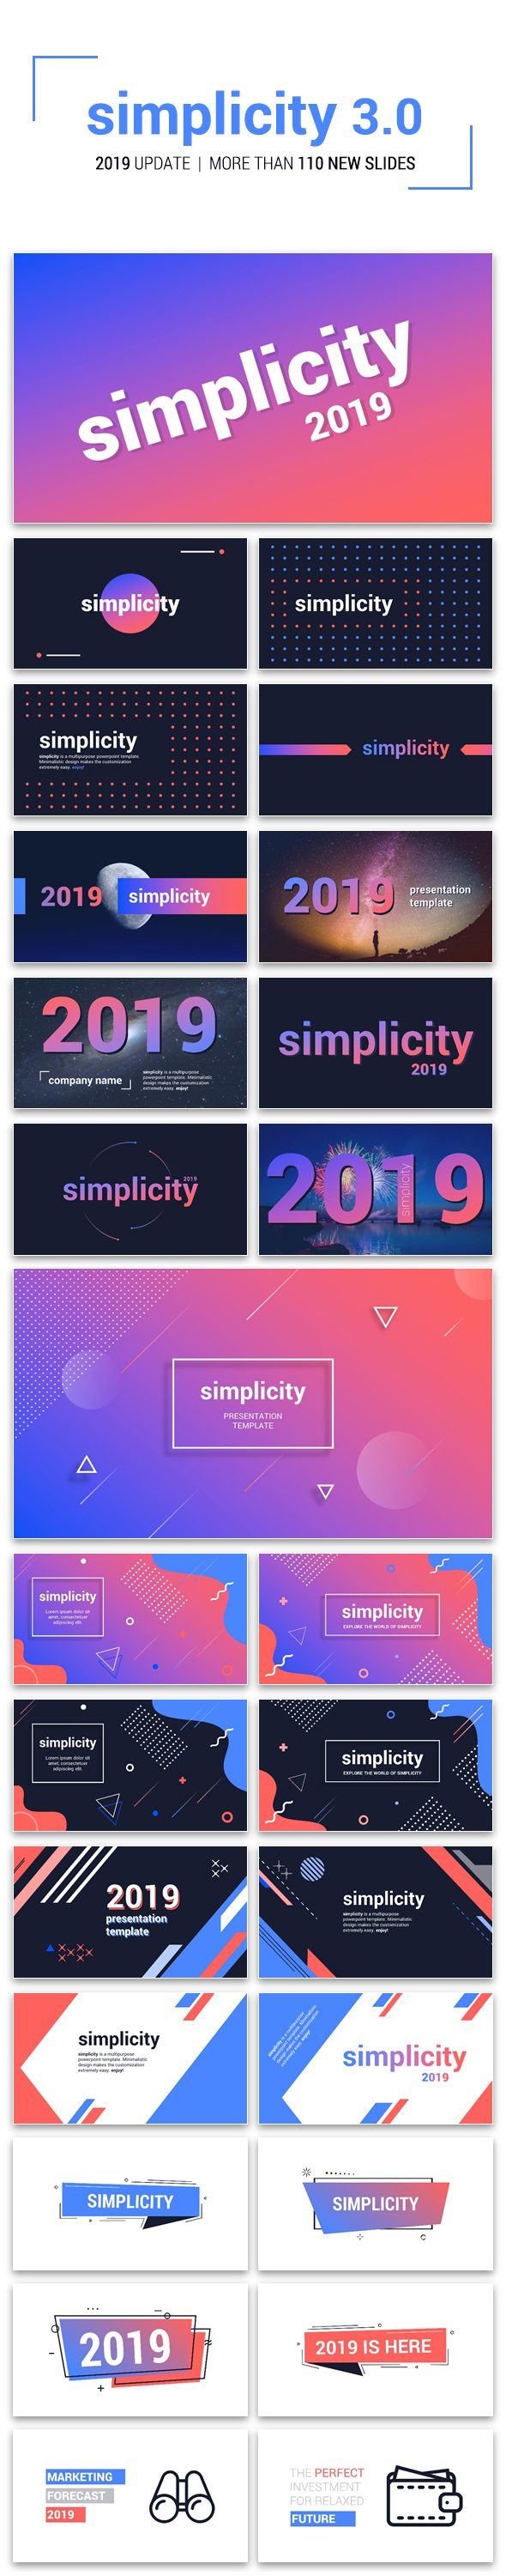 Simplicity 3.0 – Premium and Easy to Edit Template - 6